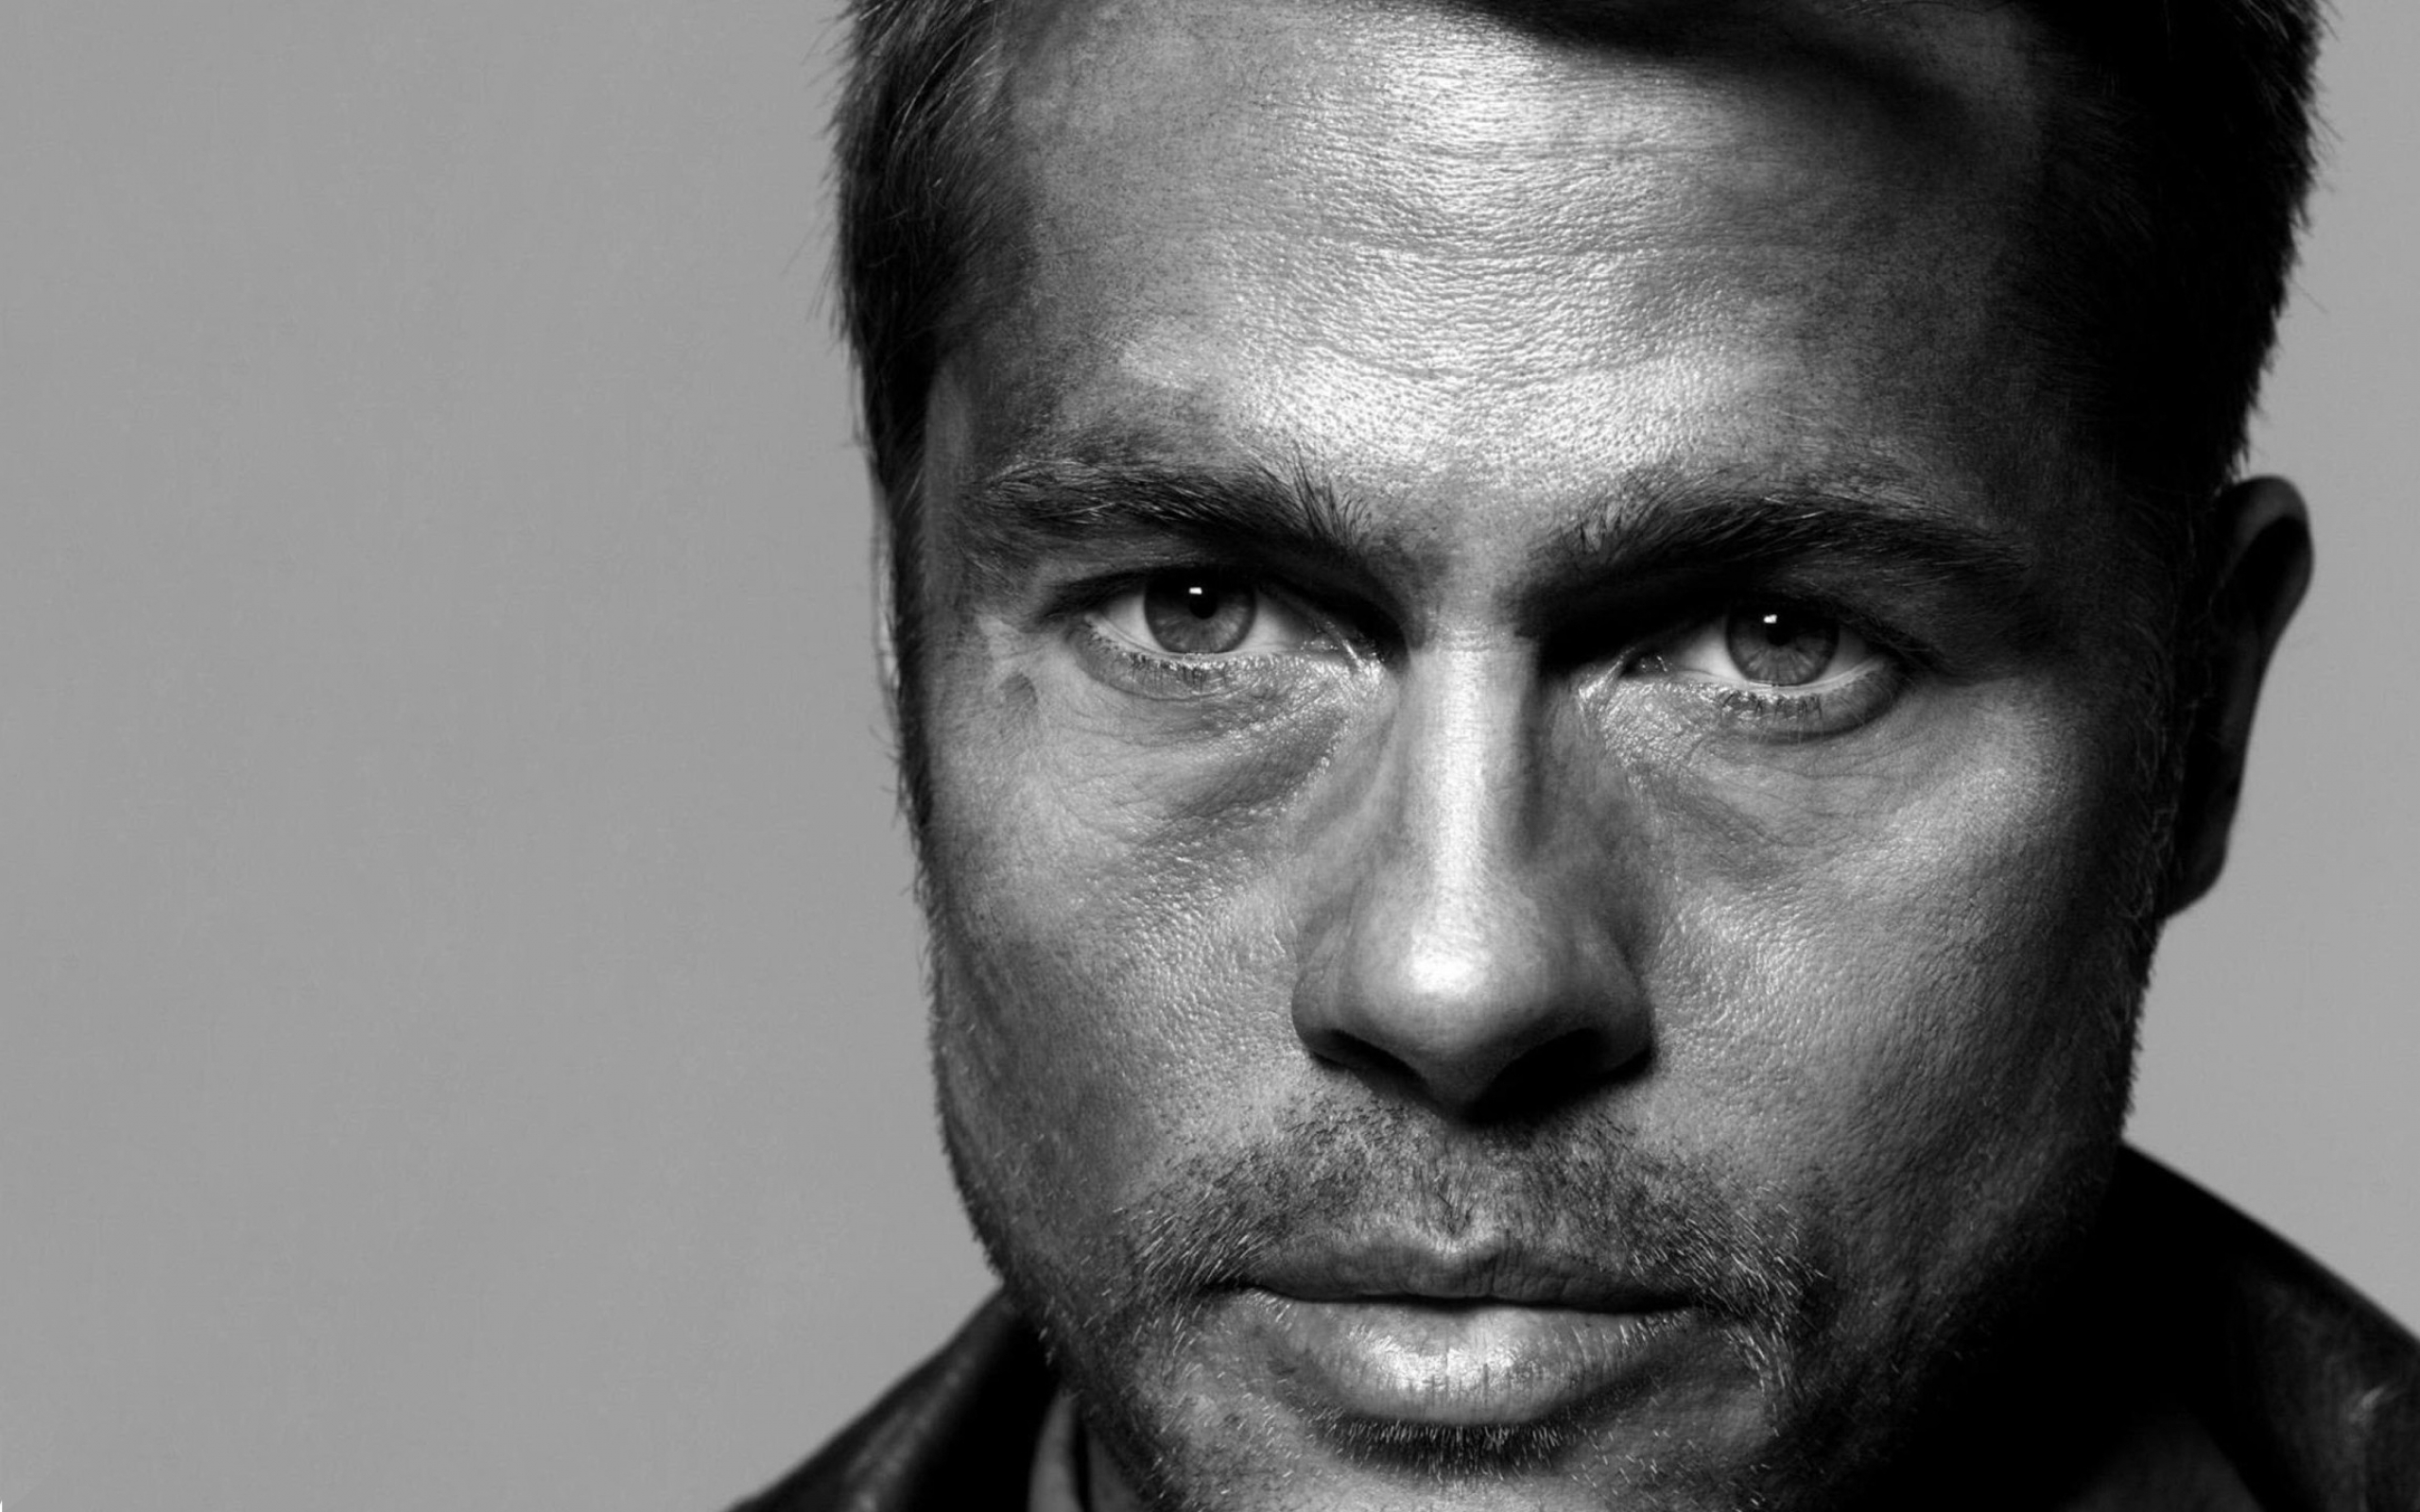 Brad Pitt Hd Wallpapers: Brad Pitt Wallpapers, Pictures, Images